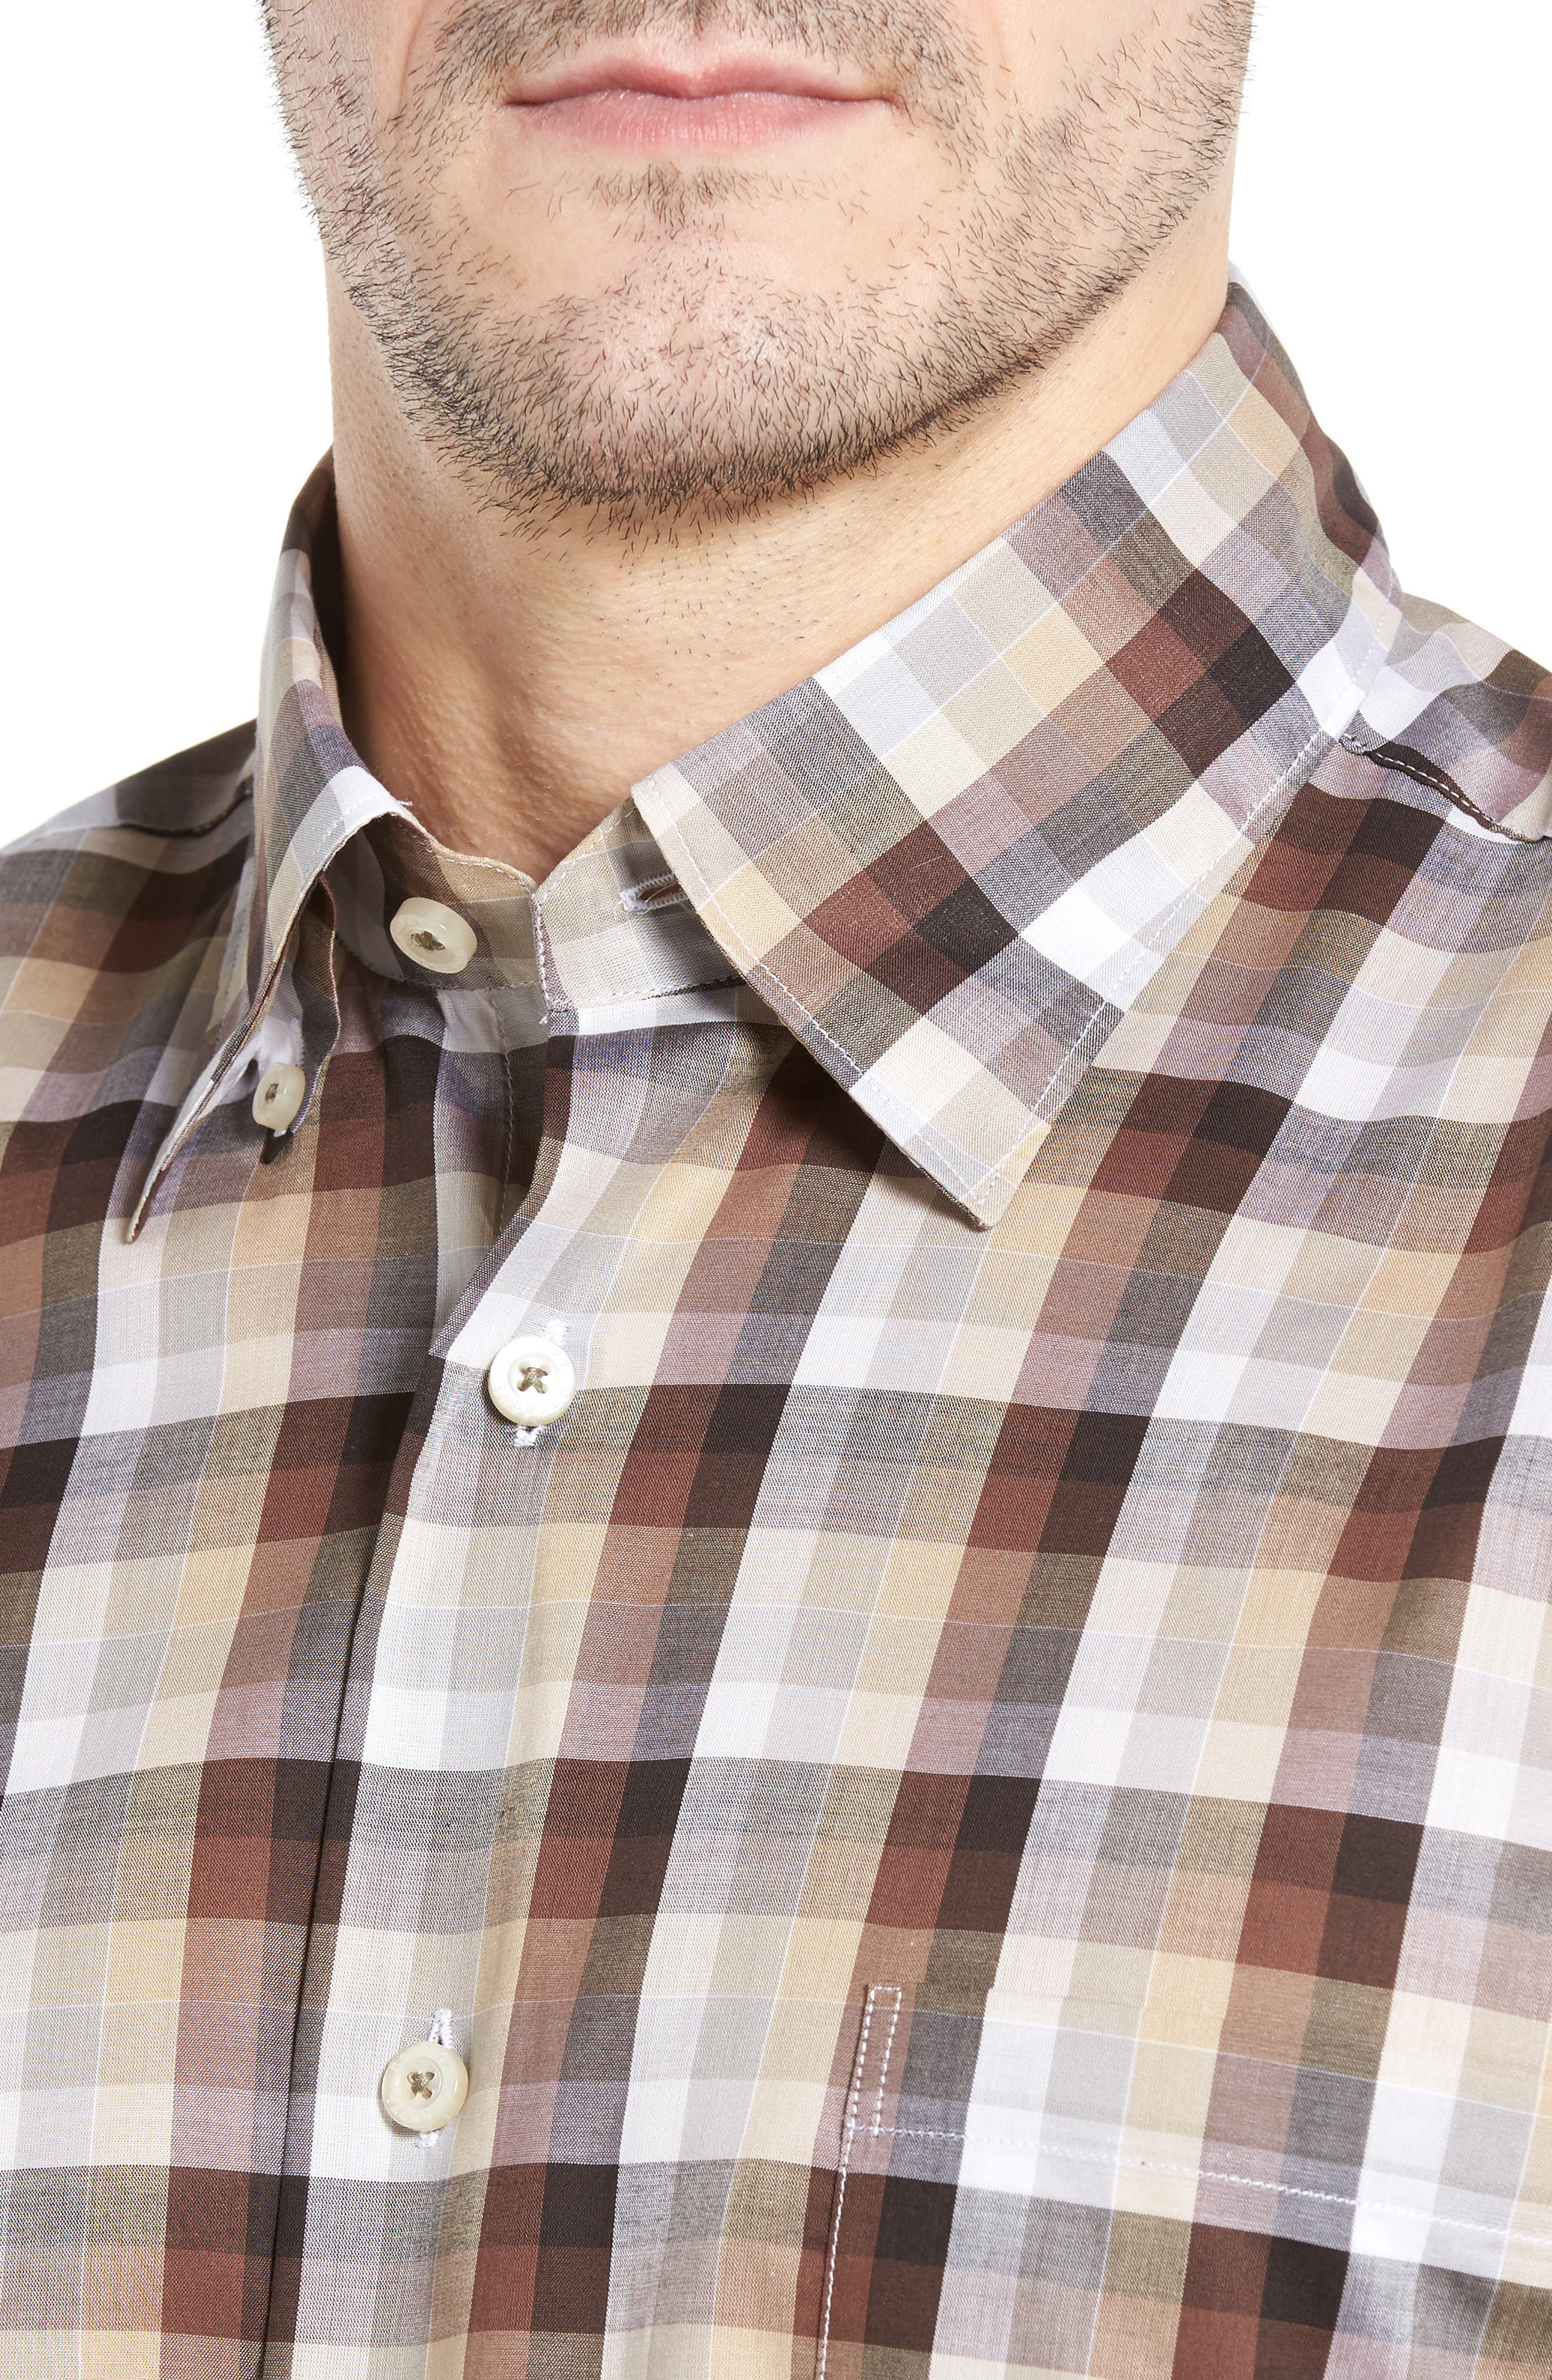 Anderson Classic Fit Check Sport Shirt,                             Alternate thumbnail 4, color,                             200